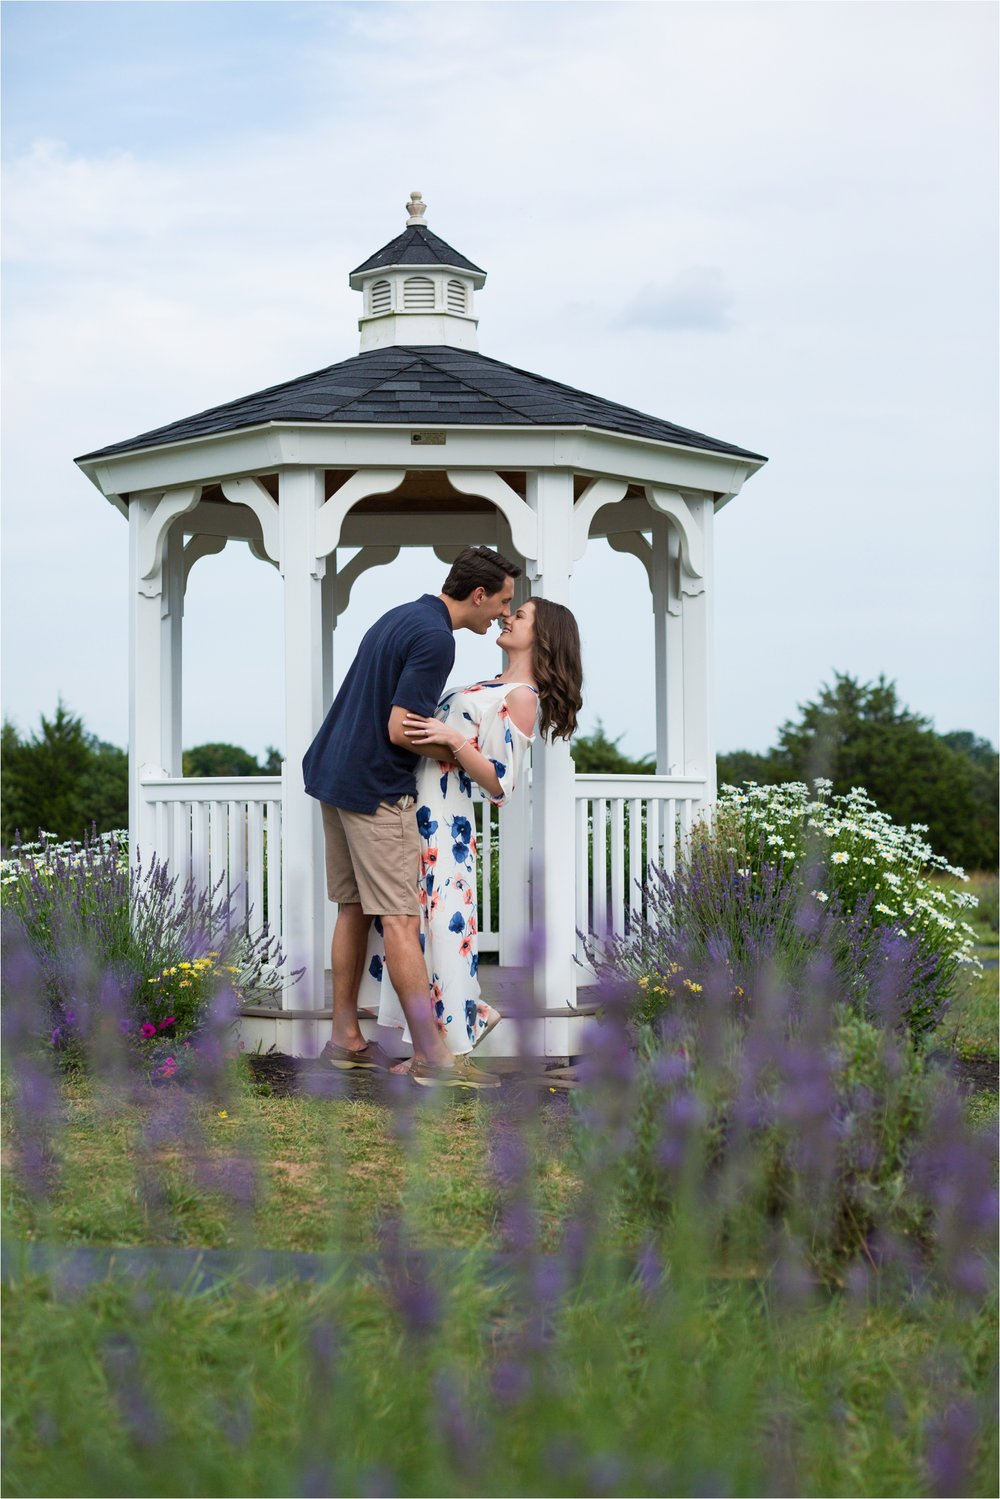 Seven-Oaks-Lavendar-Farm-Virginia-Engagement-Session-0191.jpg